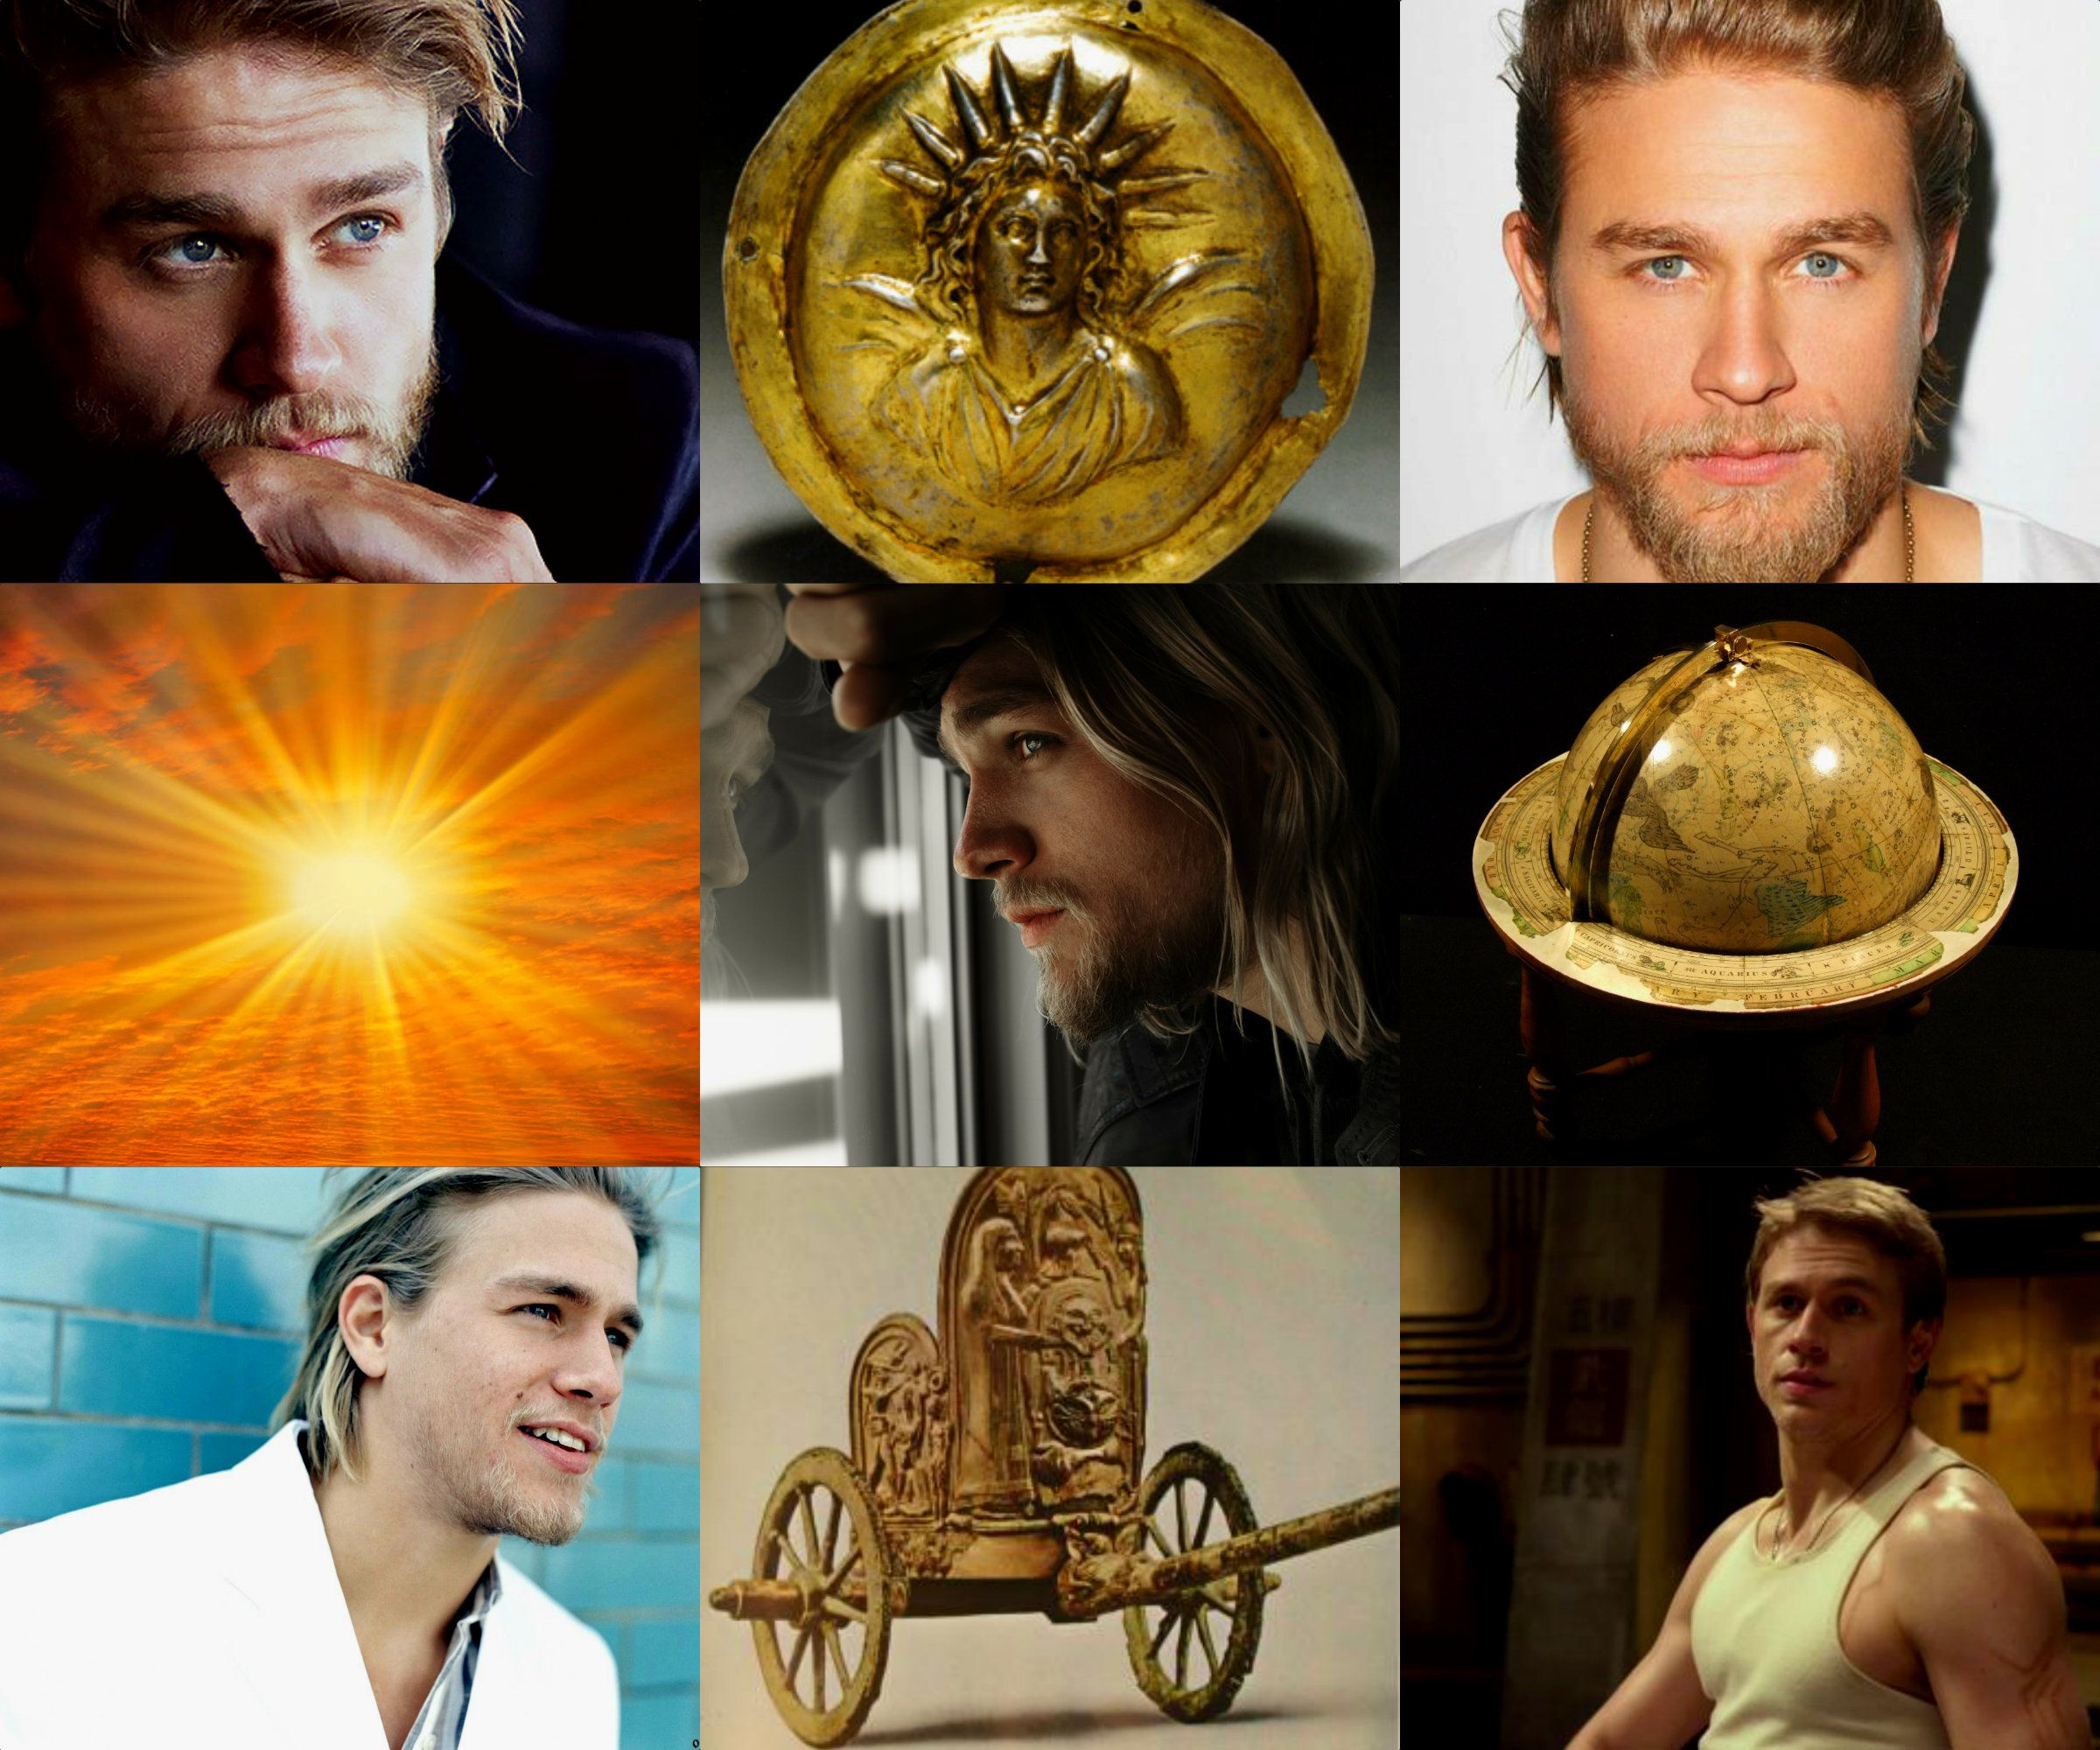 Charlie Hunnam As Helios Titan And Personification Of The Sun